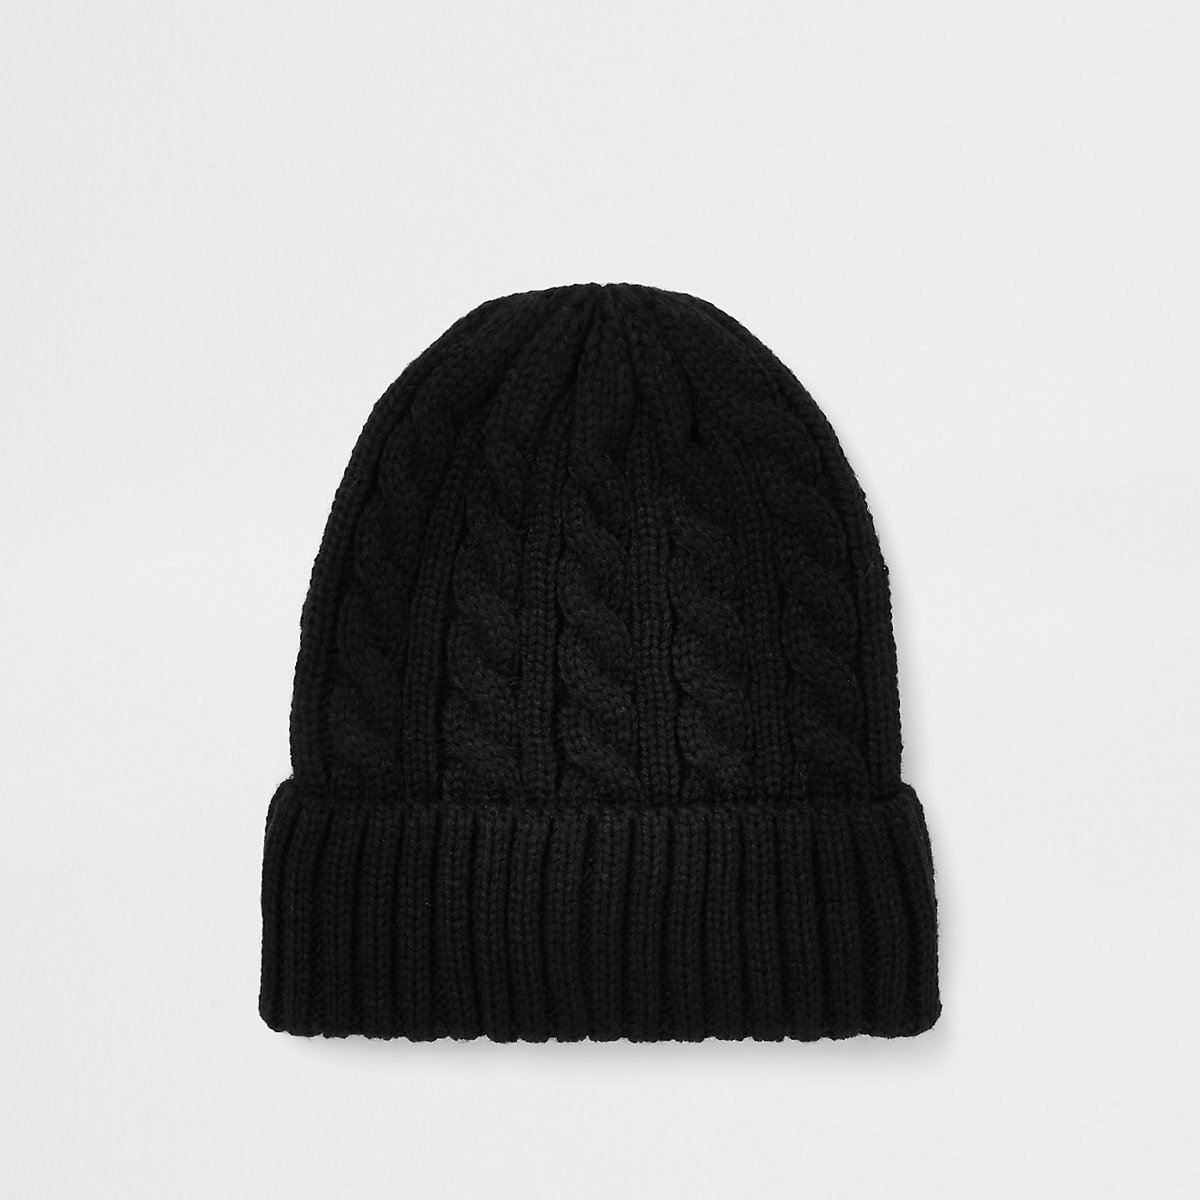 Black cable knit fisherman beanie hat